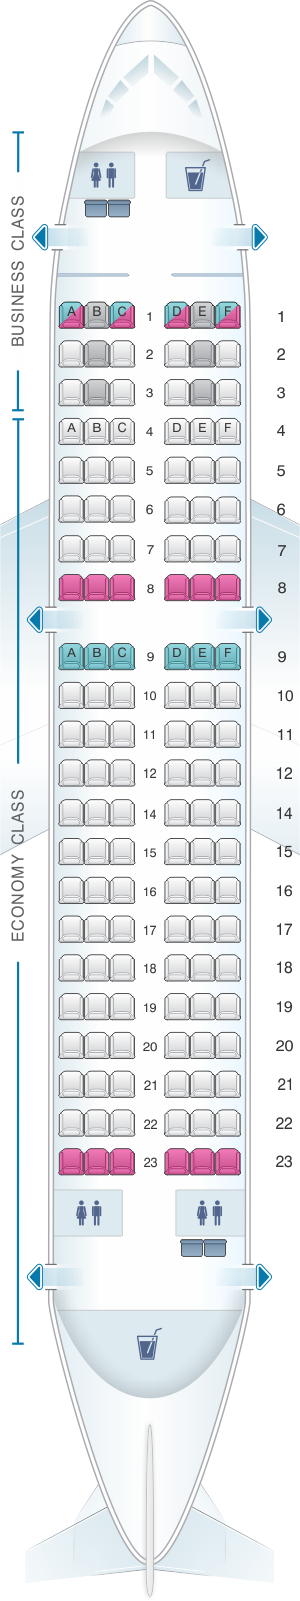 Seat map for Turkish Airlines Airbus A319 132